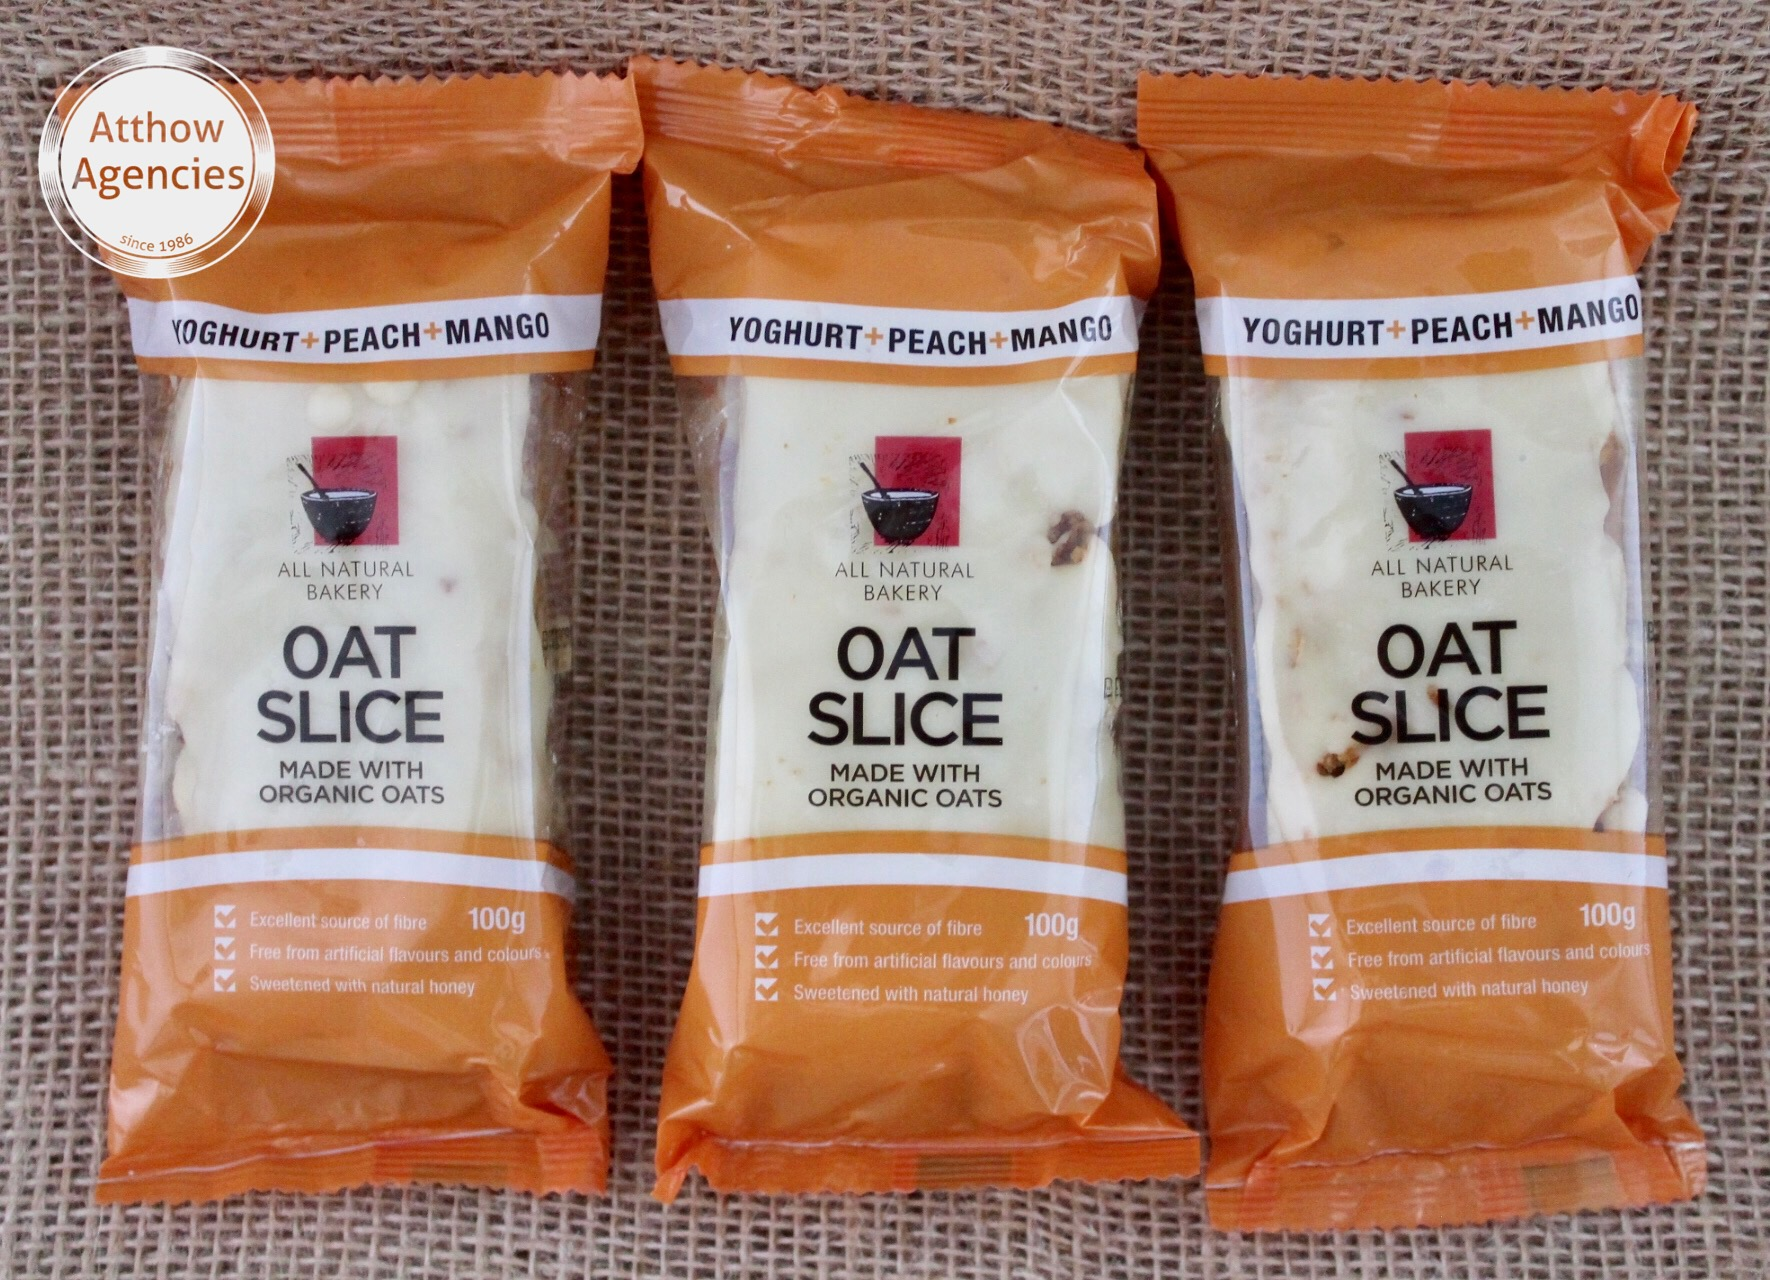 All Natural Bakery Oat Slice Review